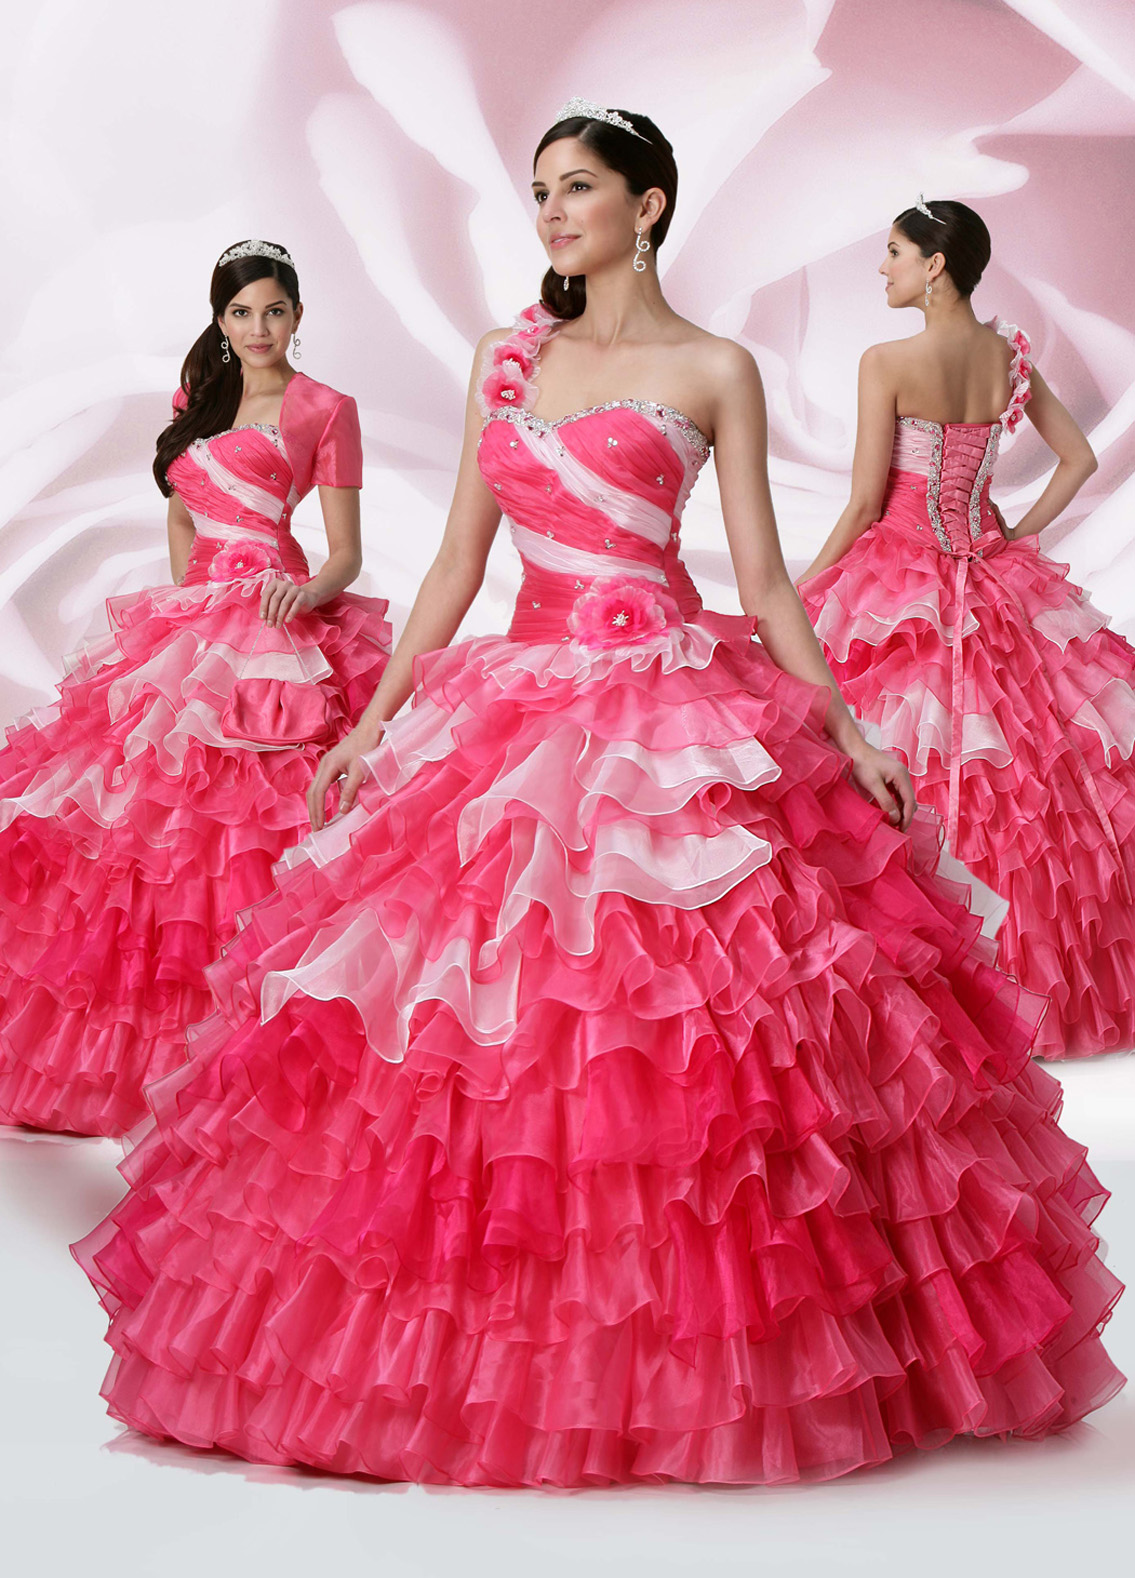 f8c4937c5f1 Pink Ball Gown Sweetheart And Floral One Shoulder Lace Up Full Length  Quinceanera Dresses With Beading And Ruffles